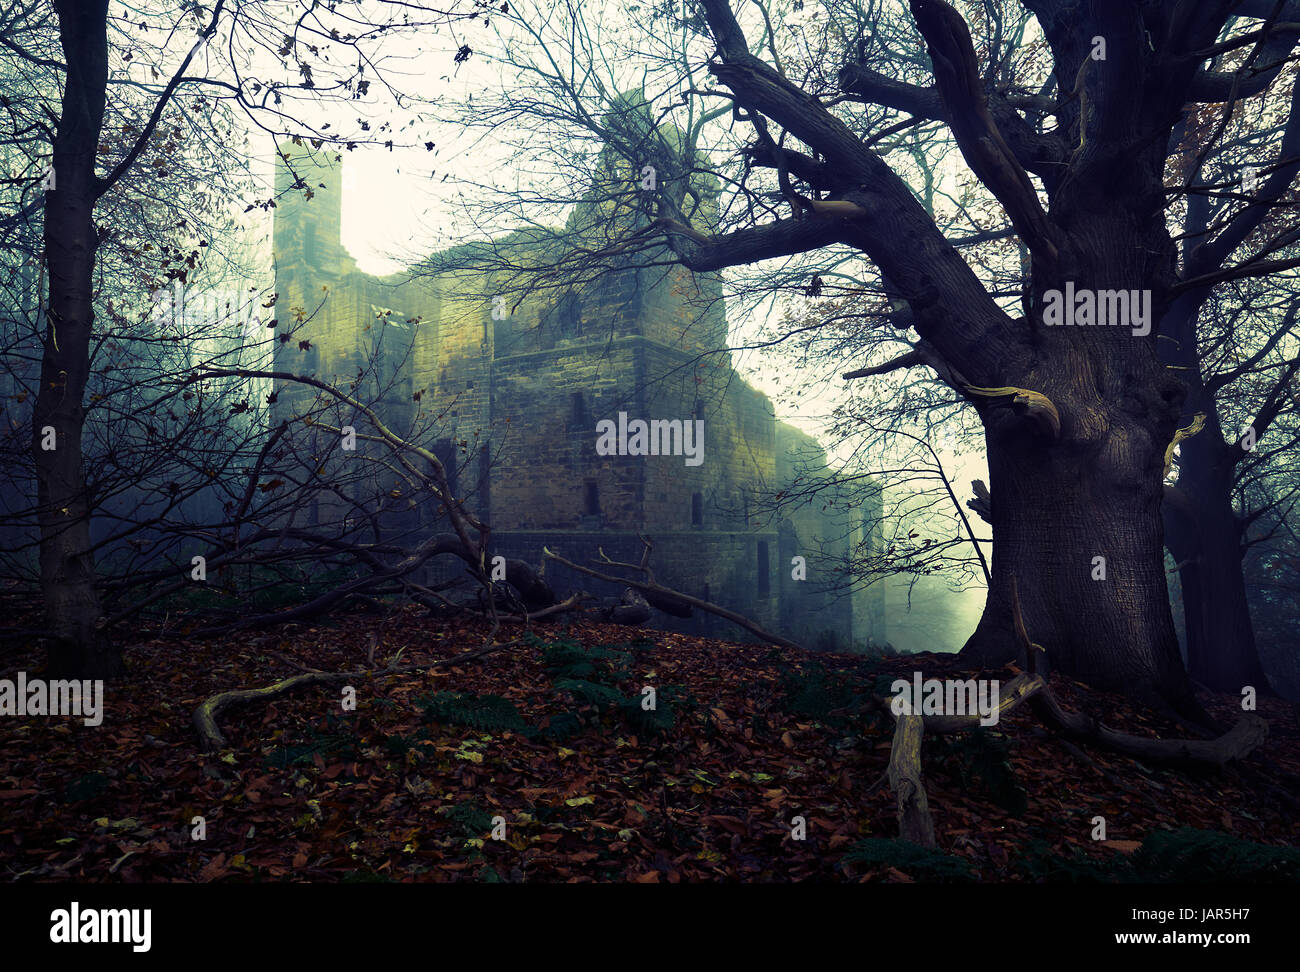 A rather spooky image of Harewood Castle on the Harewood Estate, Yorkshire. - Stock Image